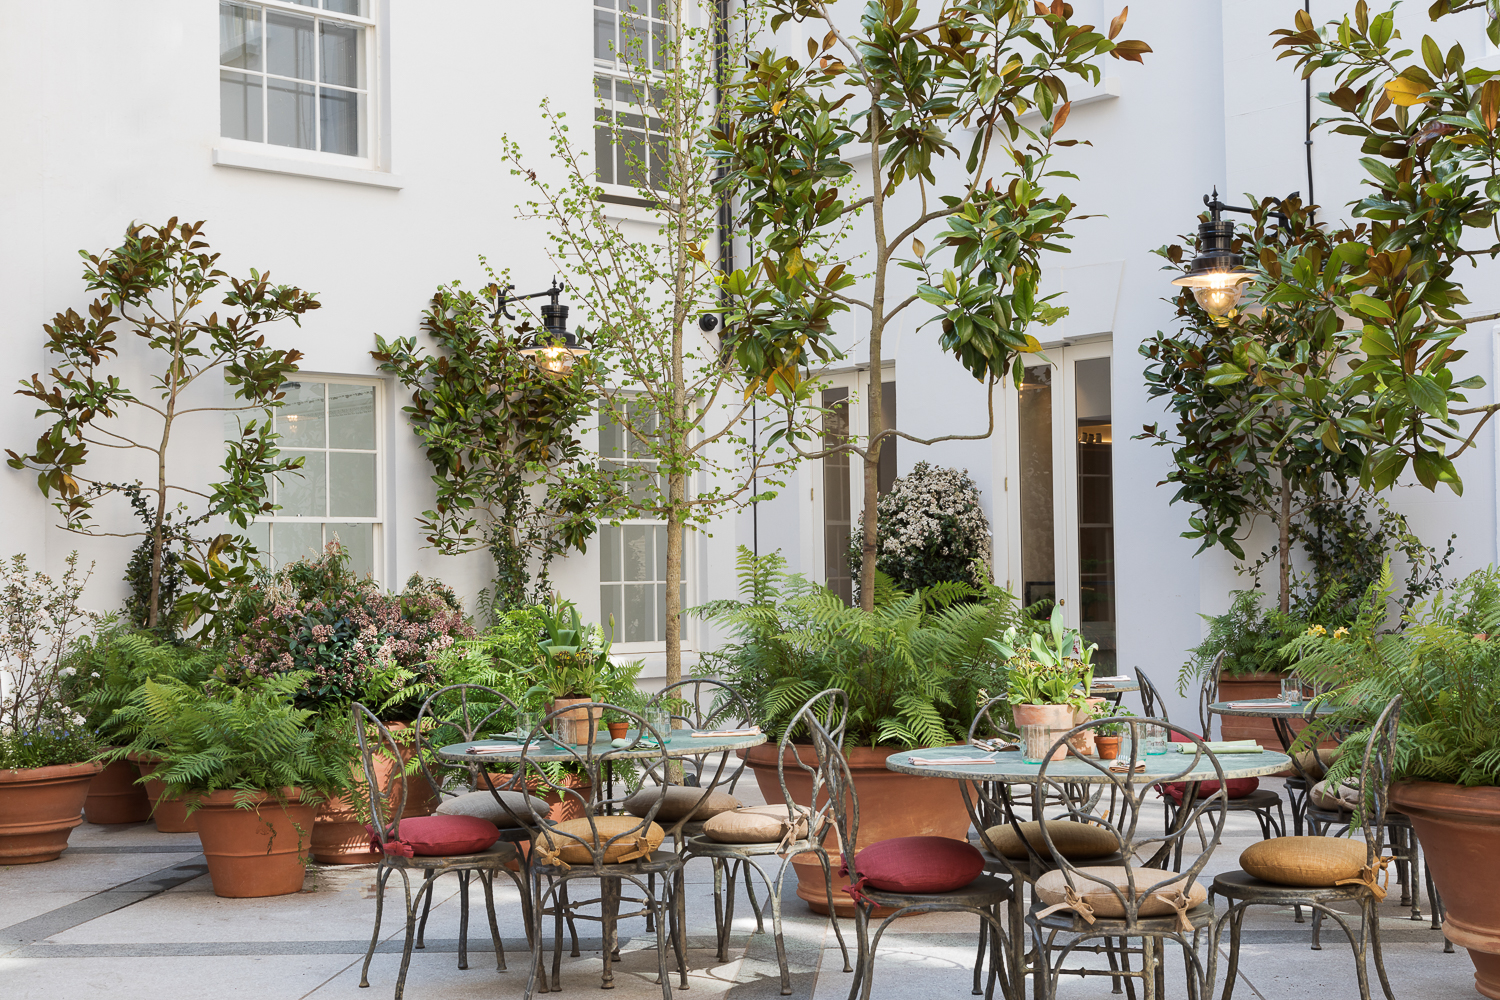 Paul Craig, Interior Photographer, Restaurant Photography, Commercial Property Dining Food Courtyard